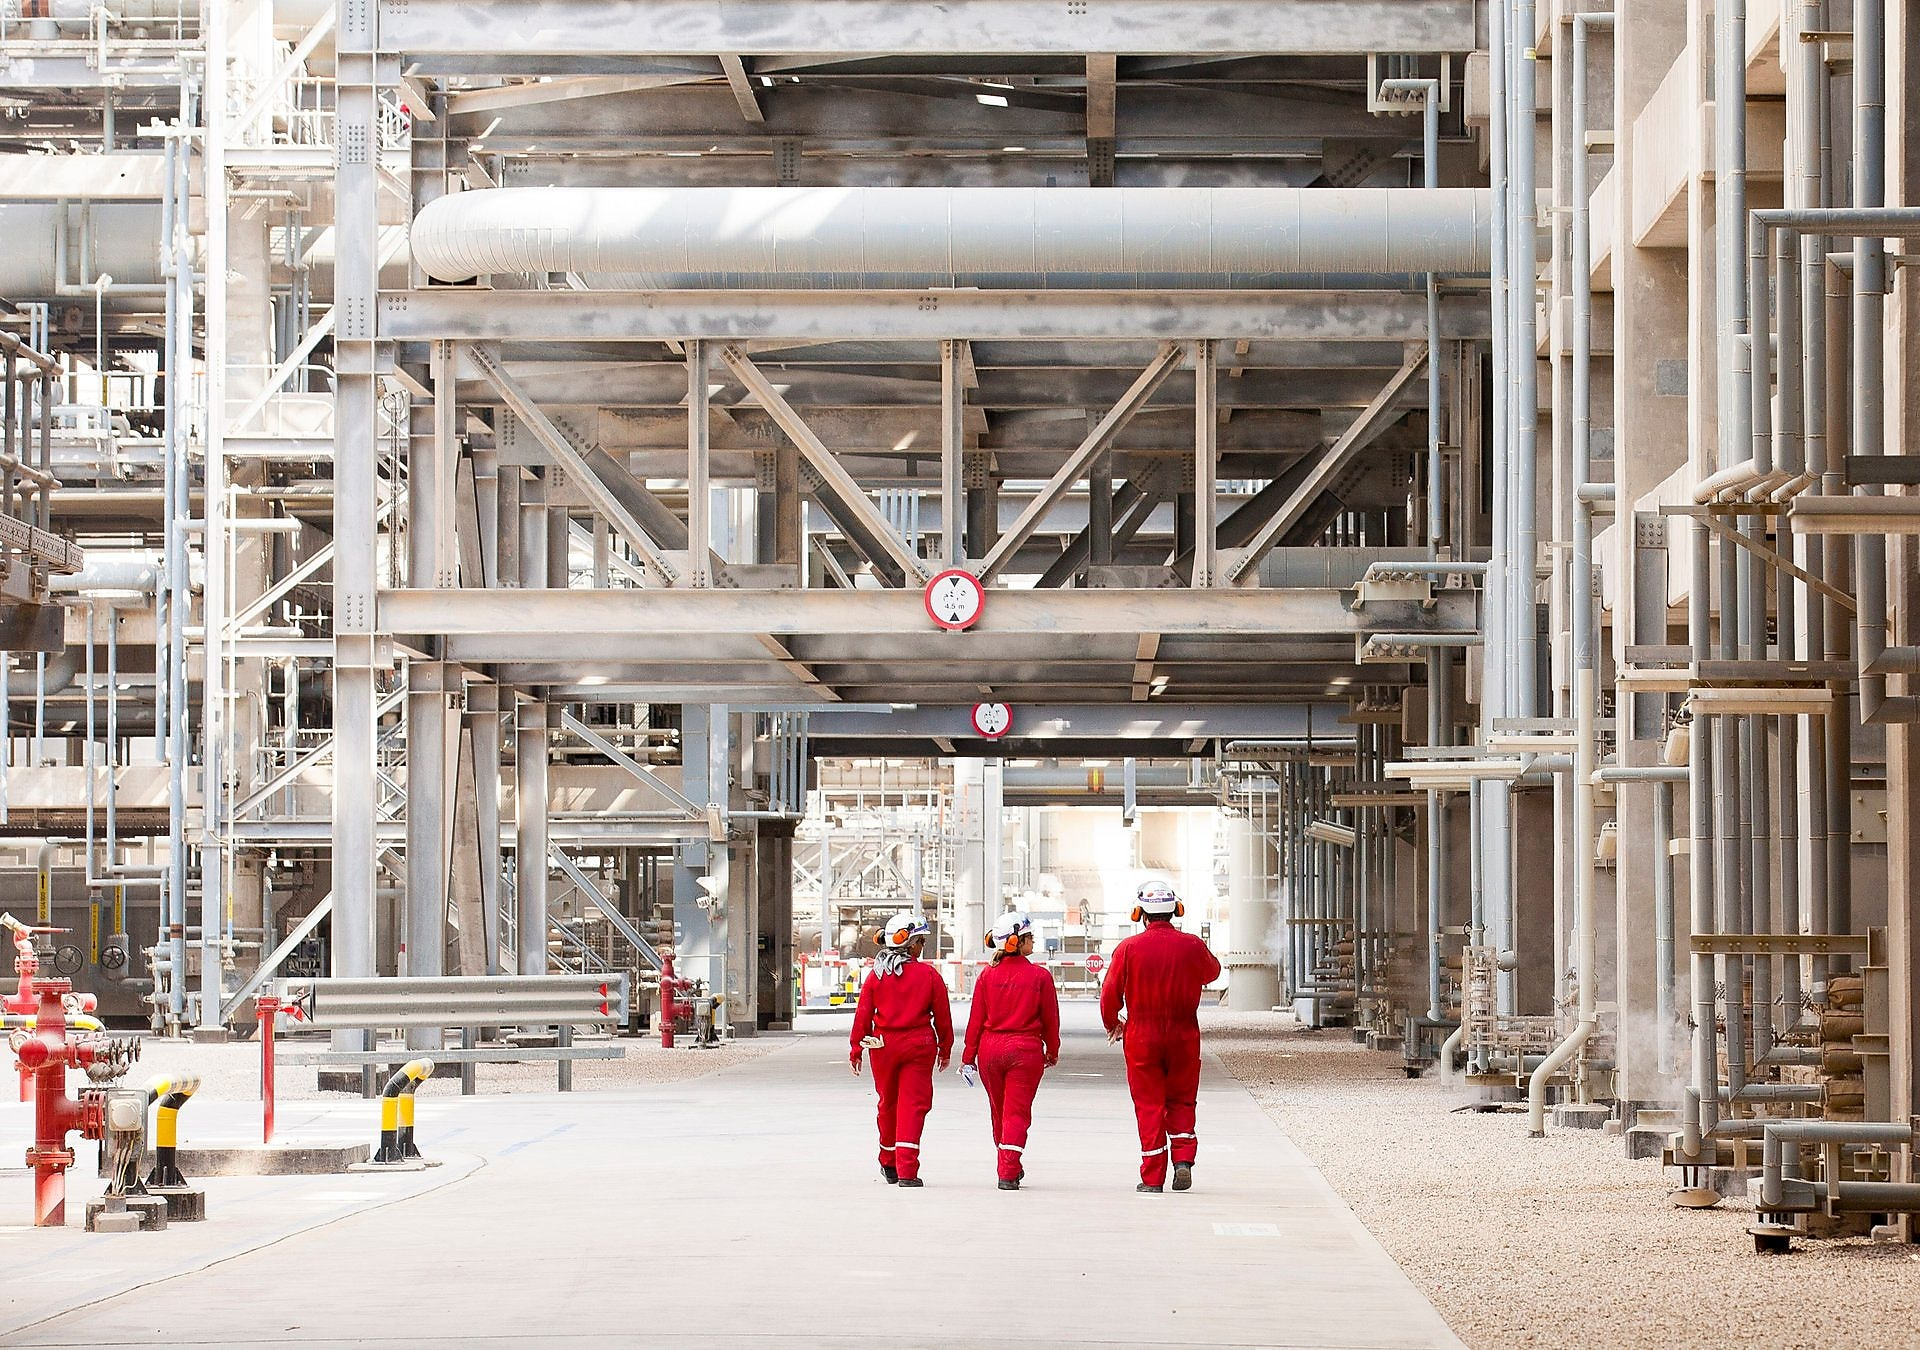 Three engineers walking through refinery grounds